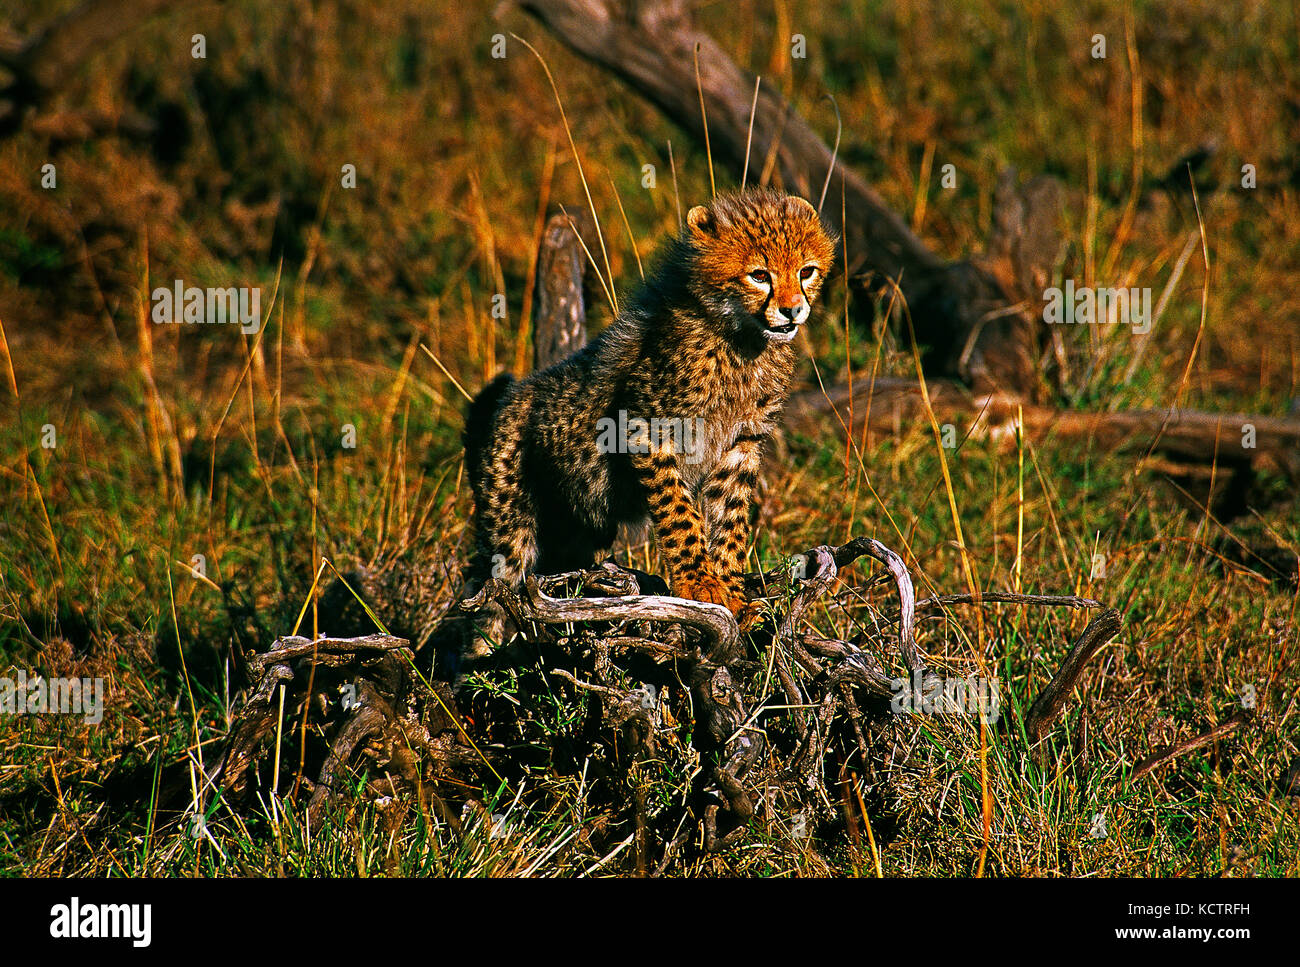 Africa. Kenya. Maasai Mara National Reserve. Wildlife.Cheetah cub. - Stock Image